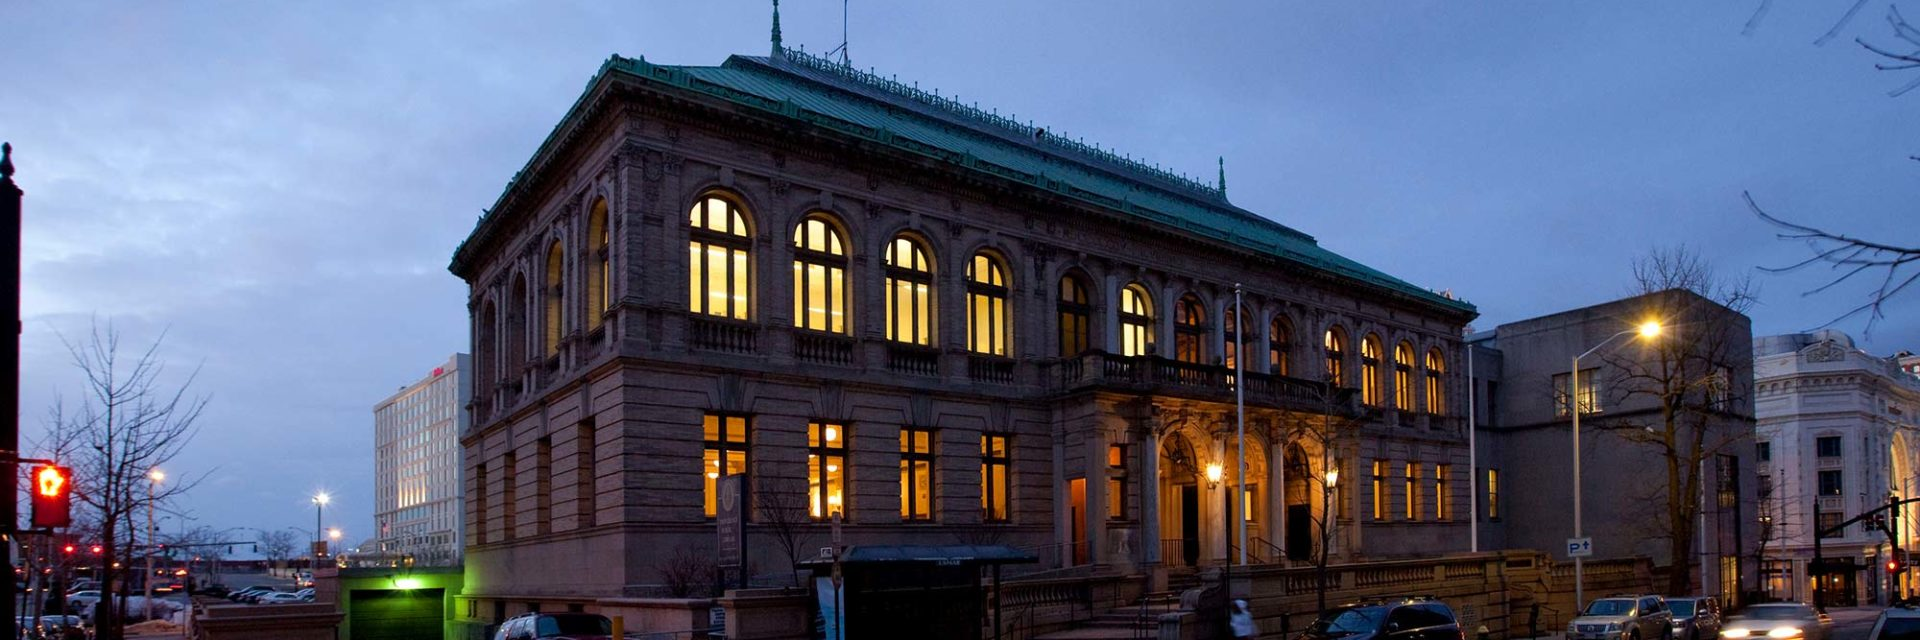 Providence Public Library Washington Street facade at night